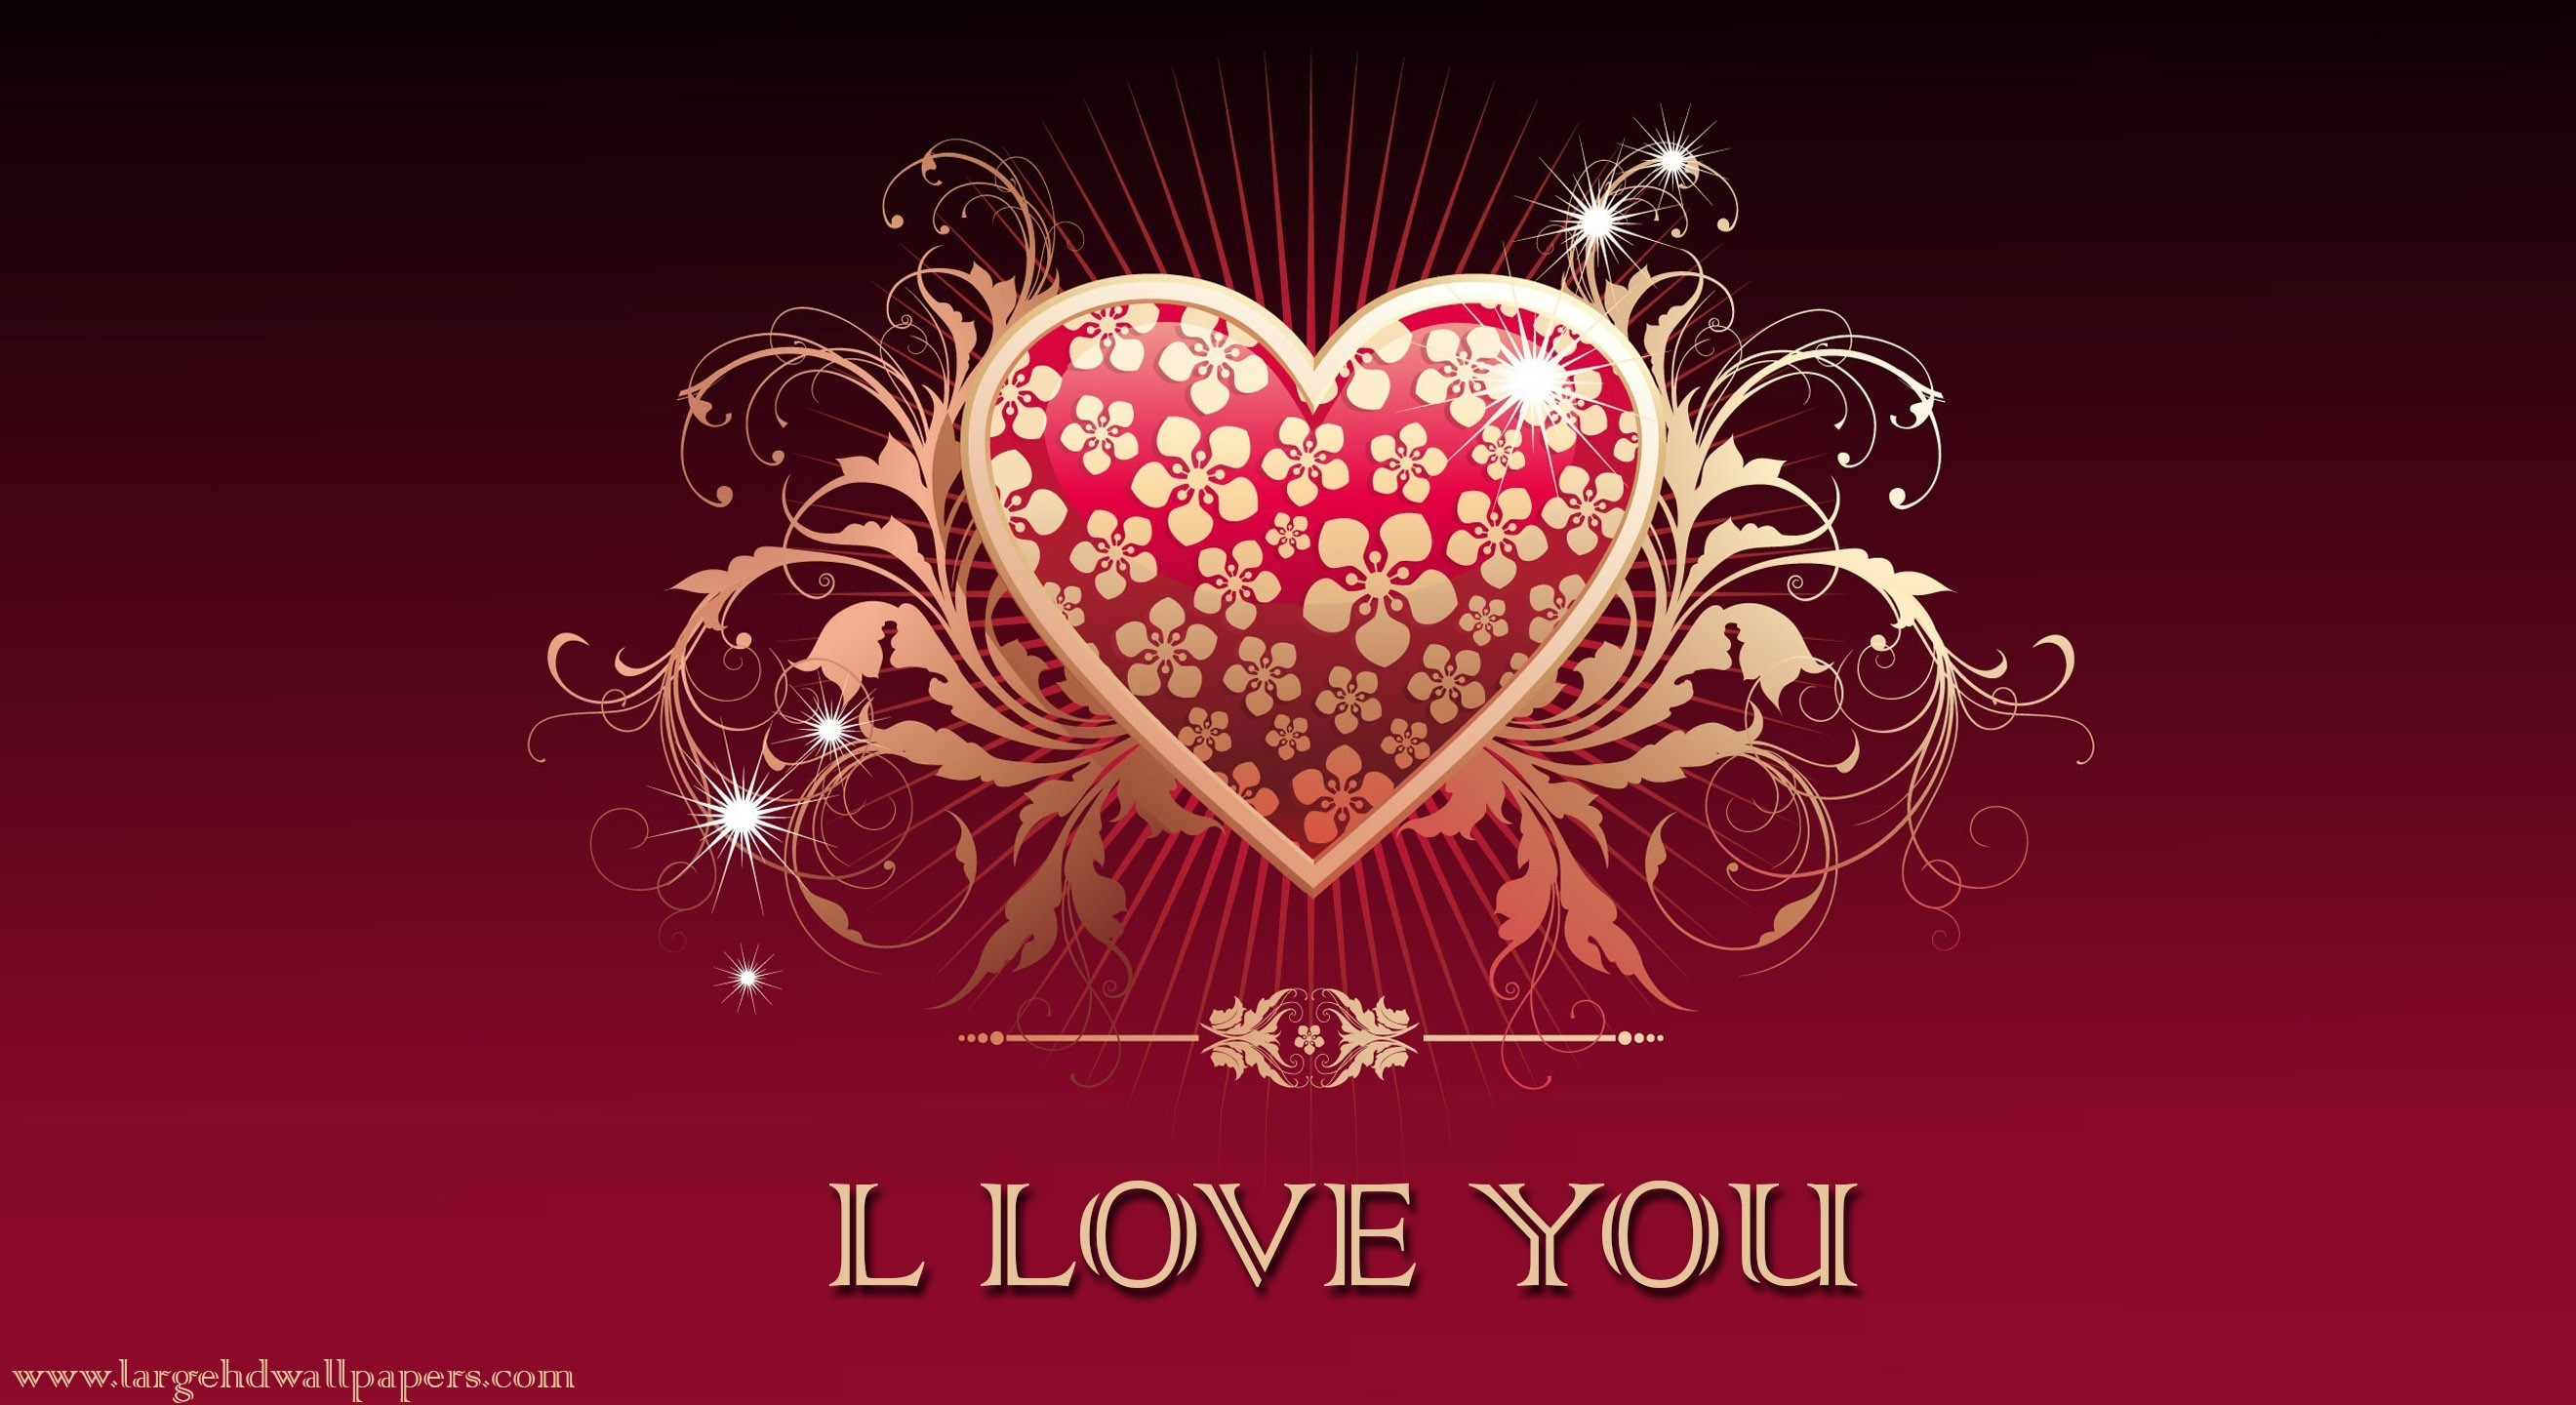 2640x1440 Royal Hearts I Love You Exclusive Full HD Best Wallpapers